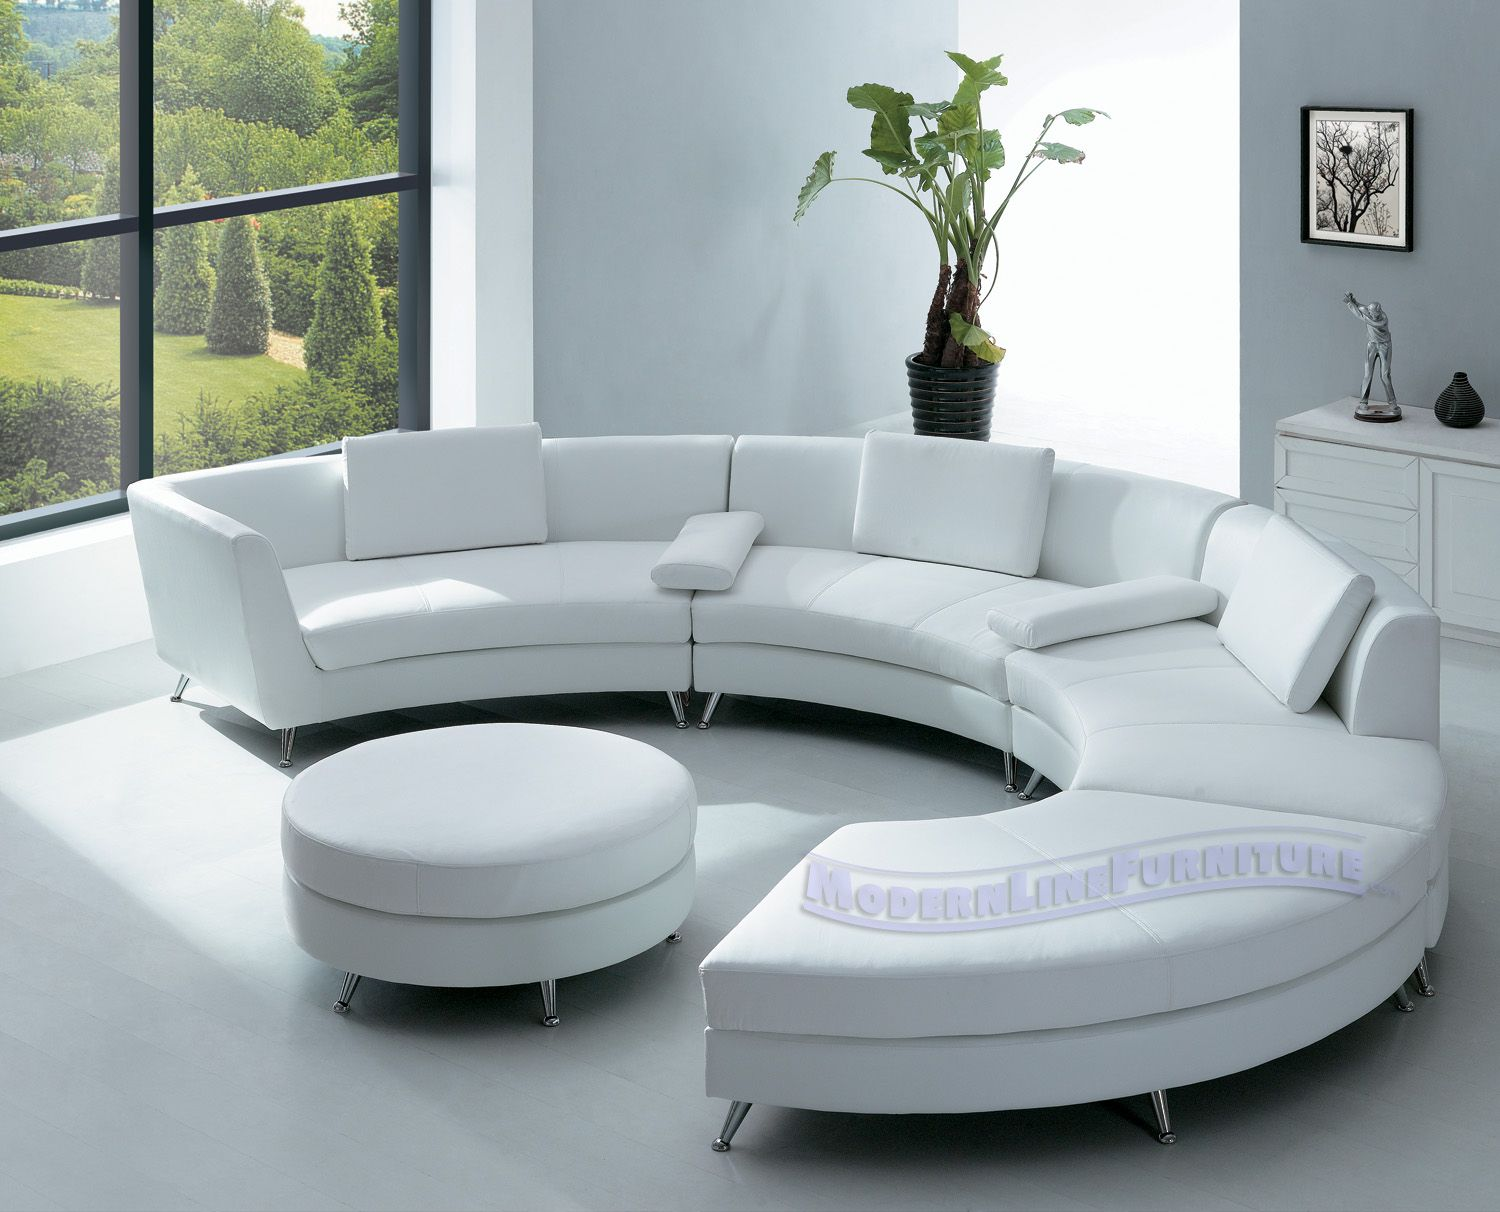 Modern Furniture For Home modern armchair for living room - creditrestore